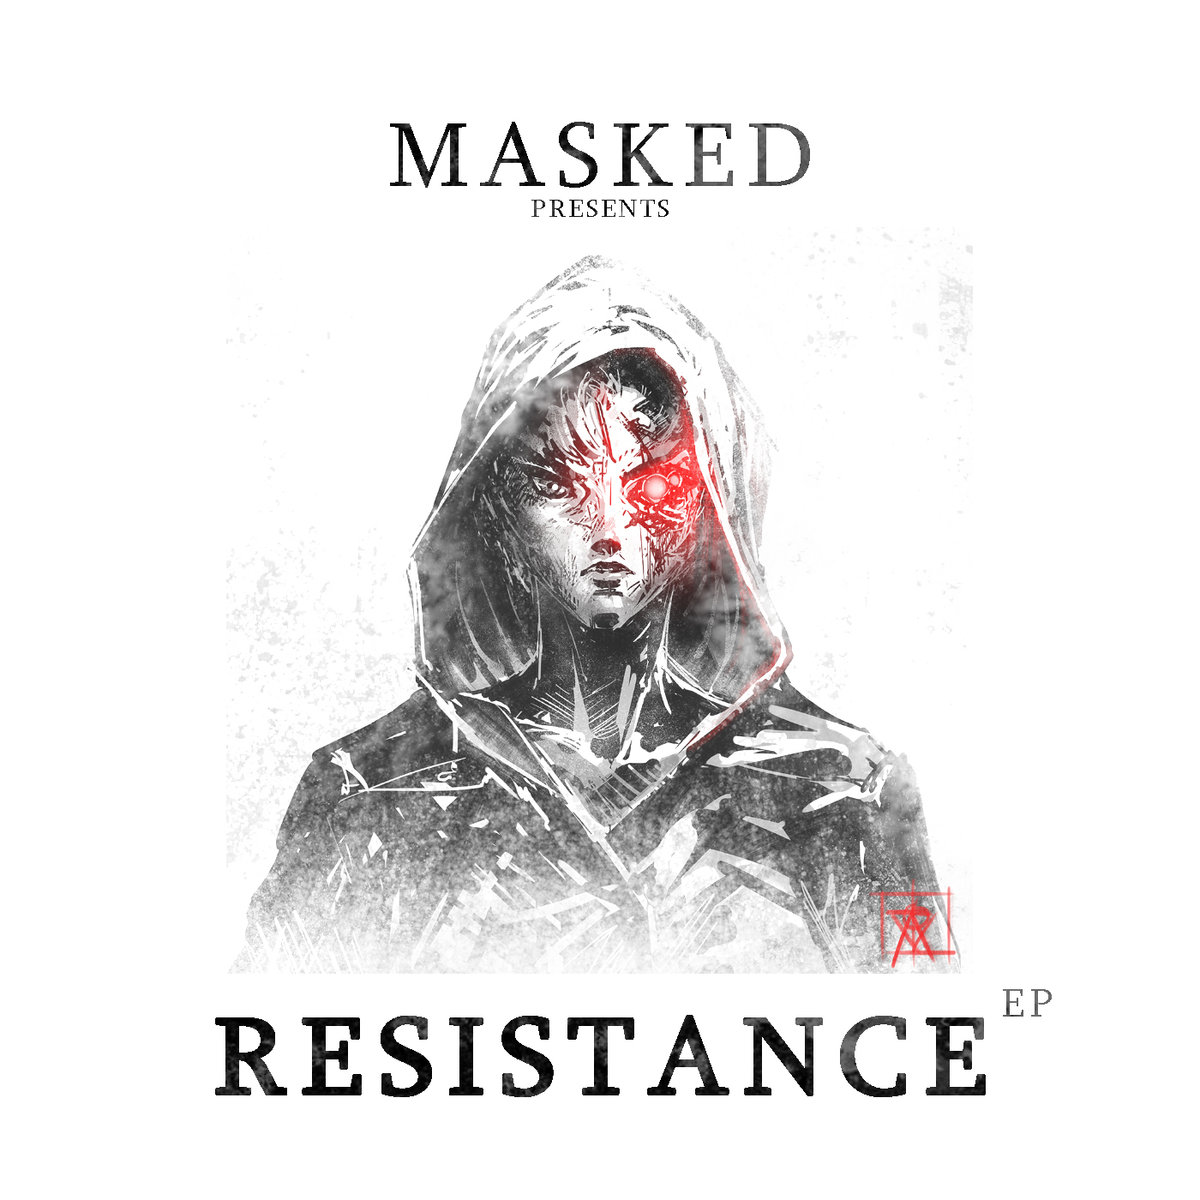 Resistance (EP)